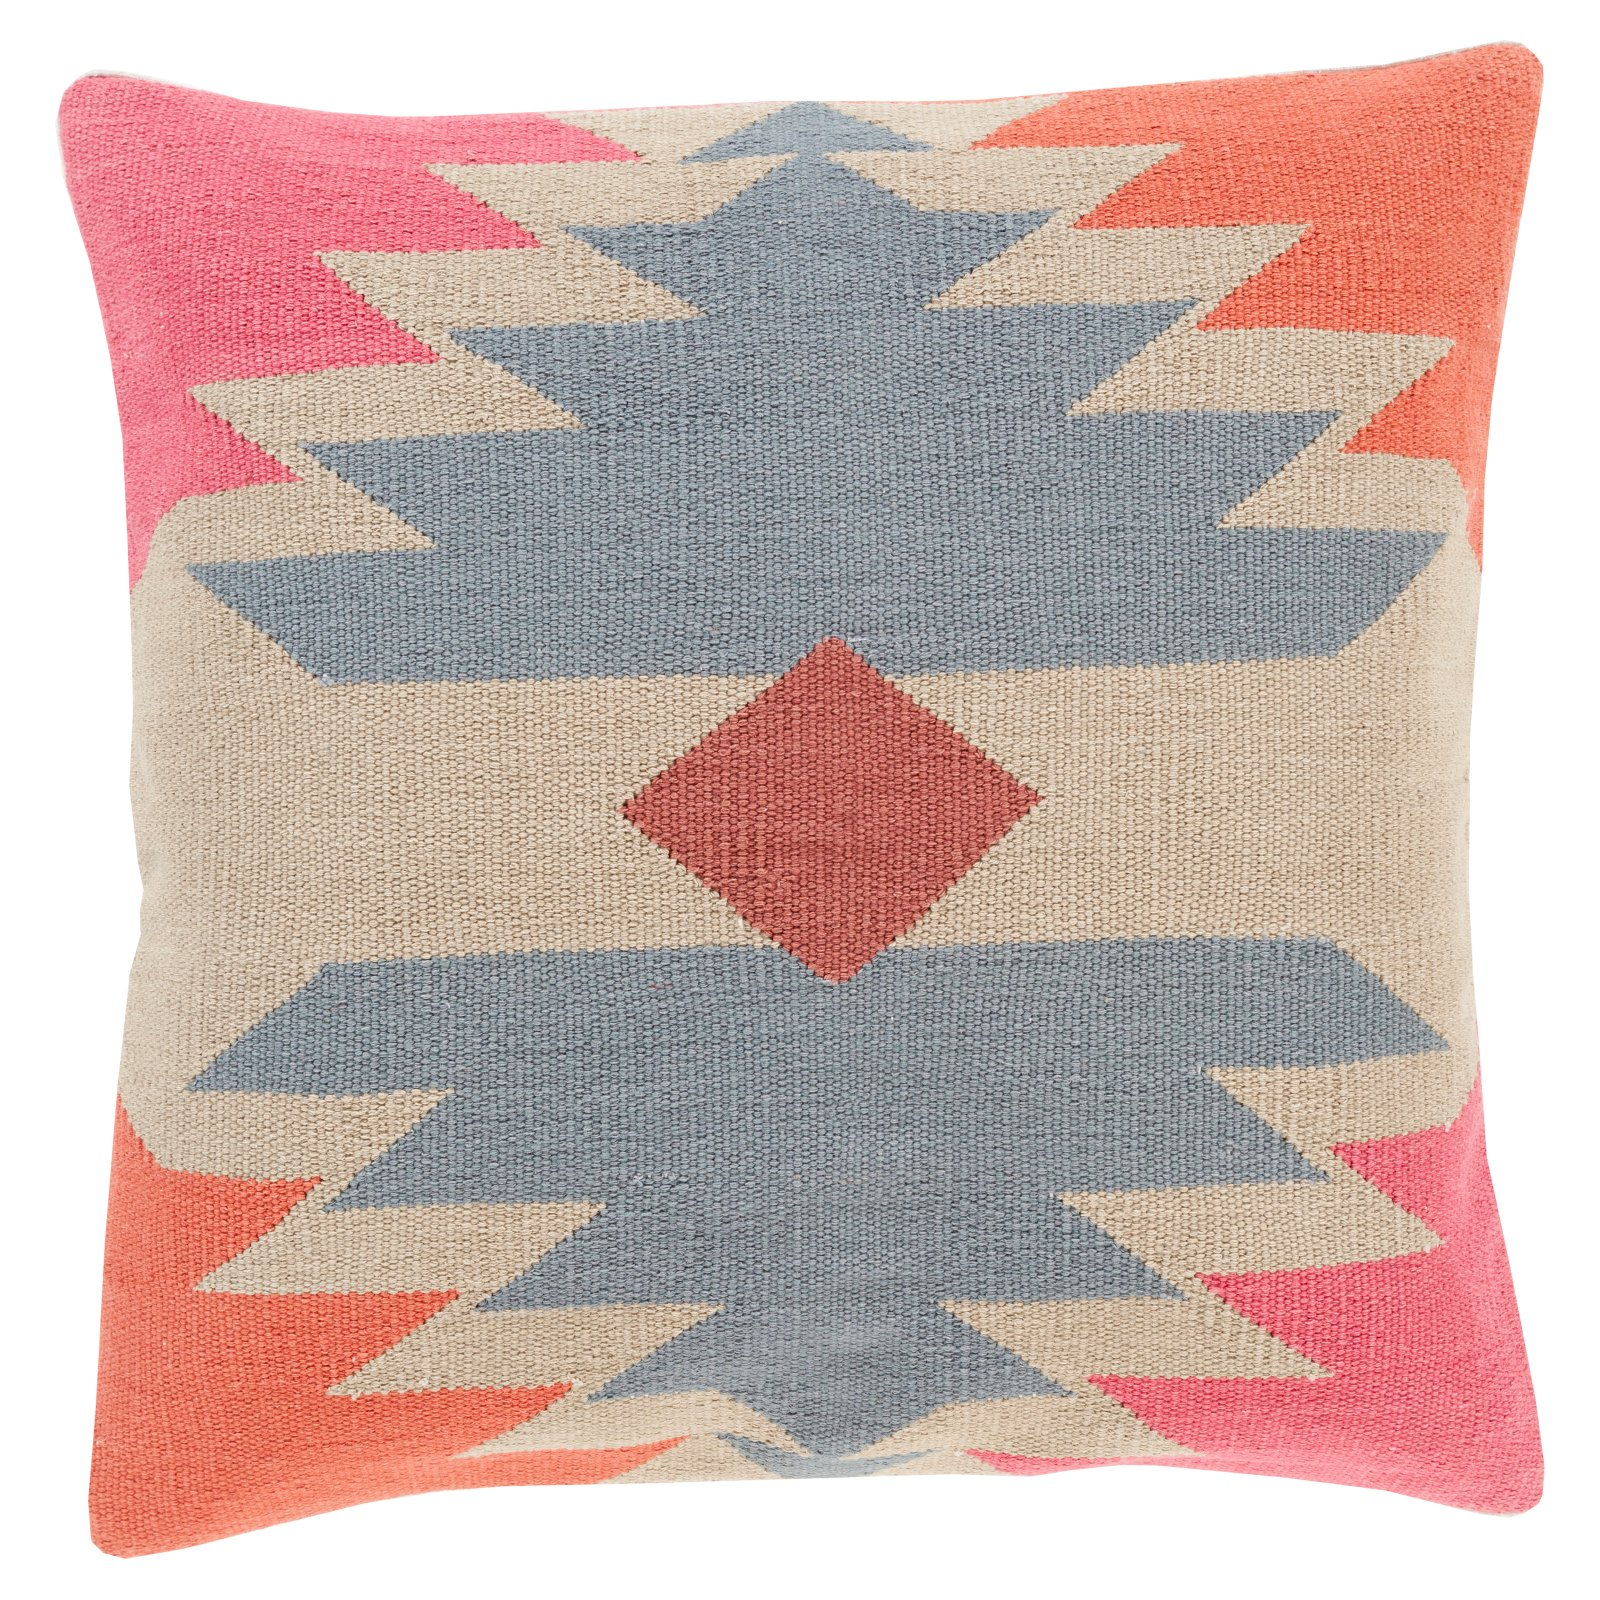 Surya Cotton Kilim Decorative Throw Pillow